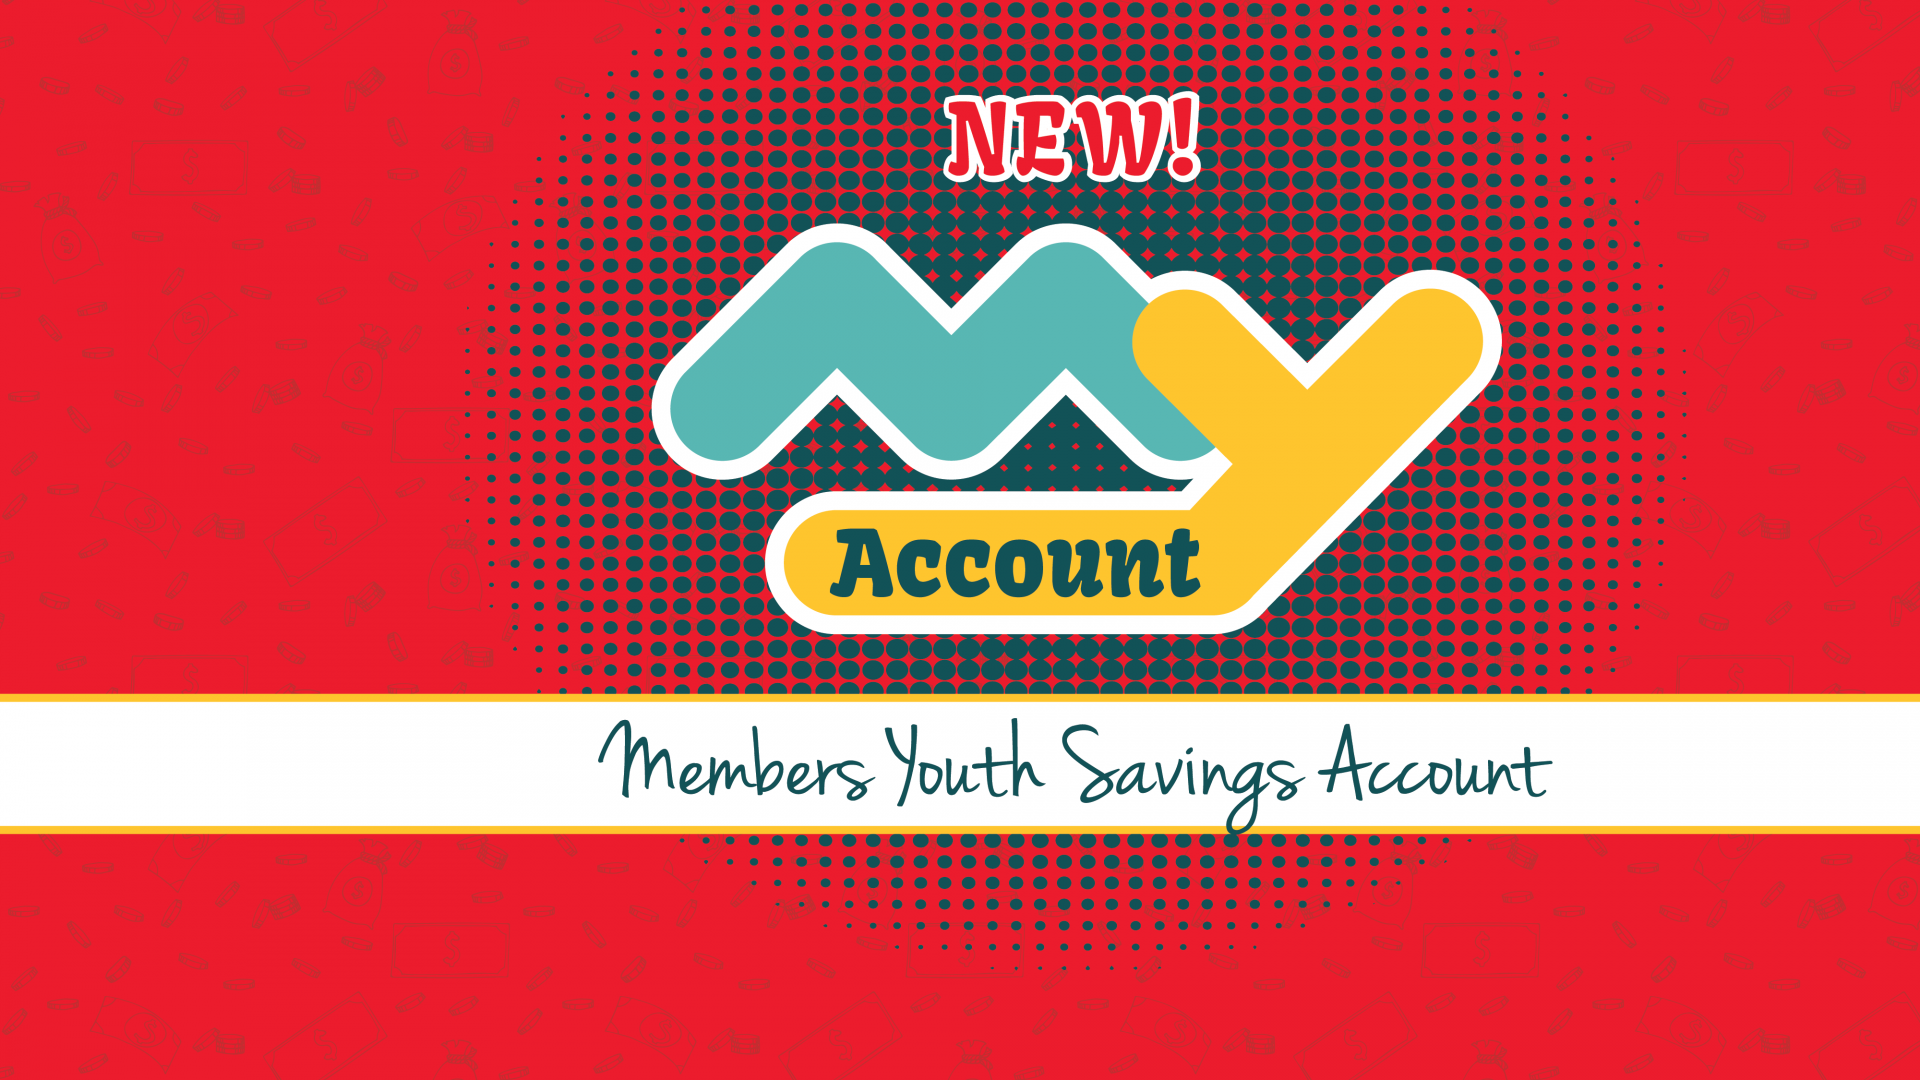 MY - Members Youth Savings Account Banner Graphic